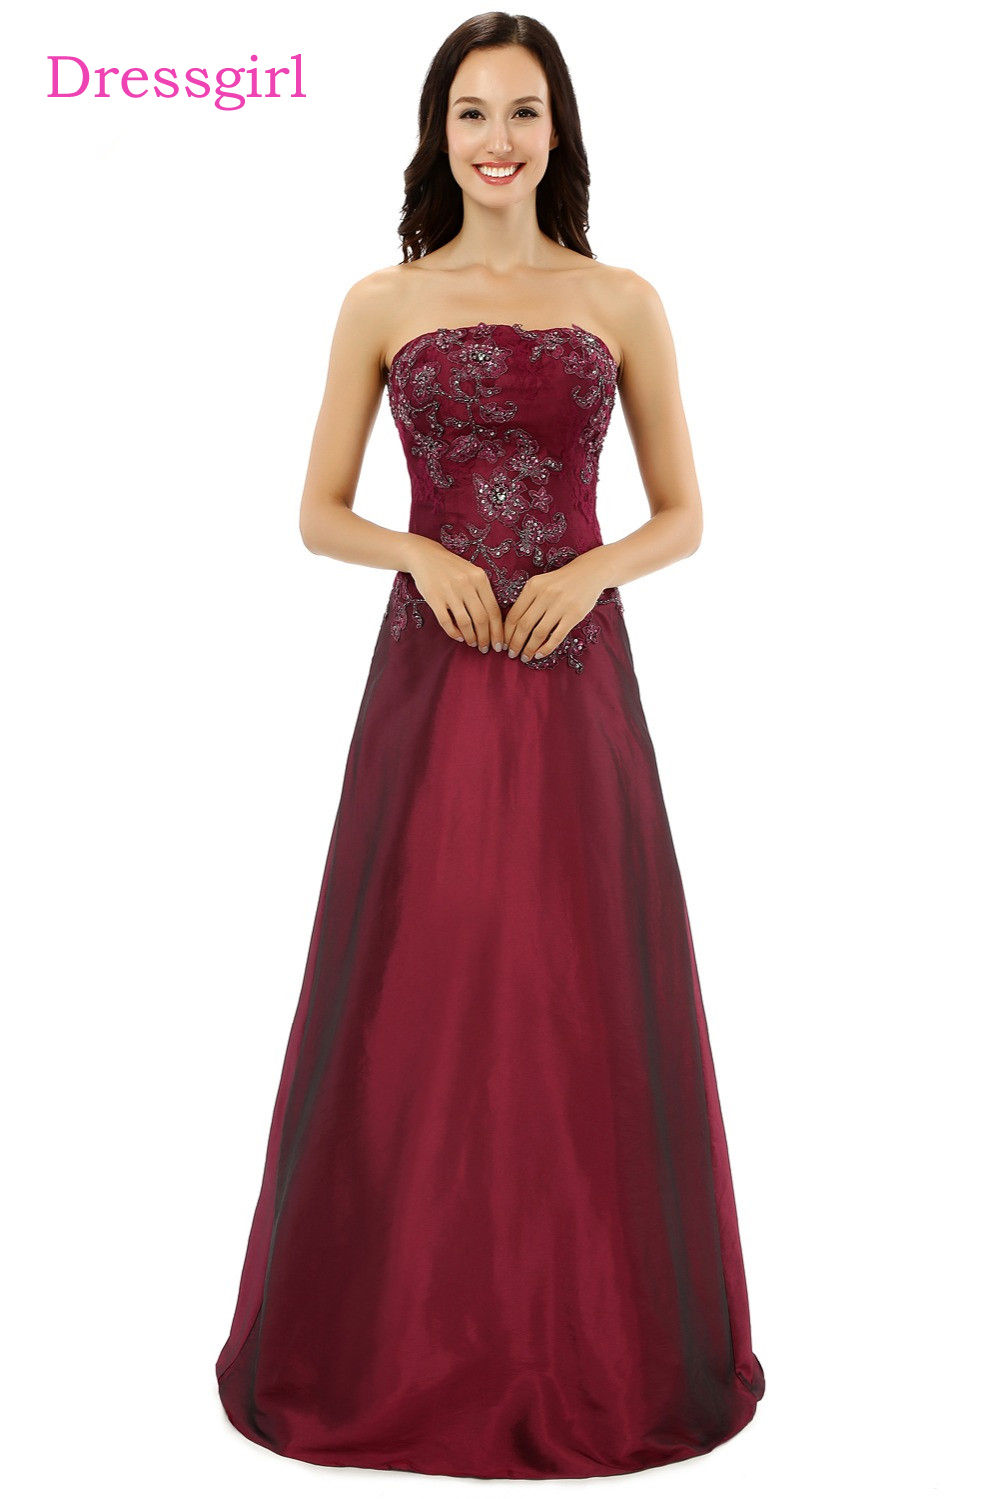 Plus Size Burgundy 2019 Mother Of The Bride Dresses A-line Strapless Taffeta Lace Wedding Party Dress Mother Dresses For Wedding